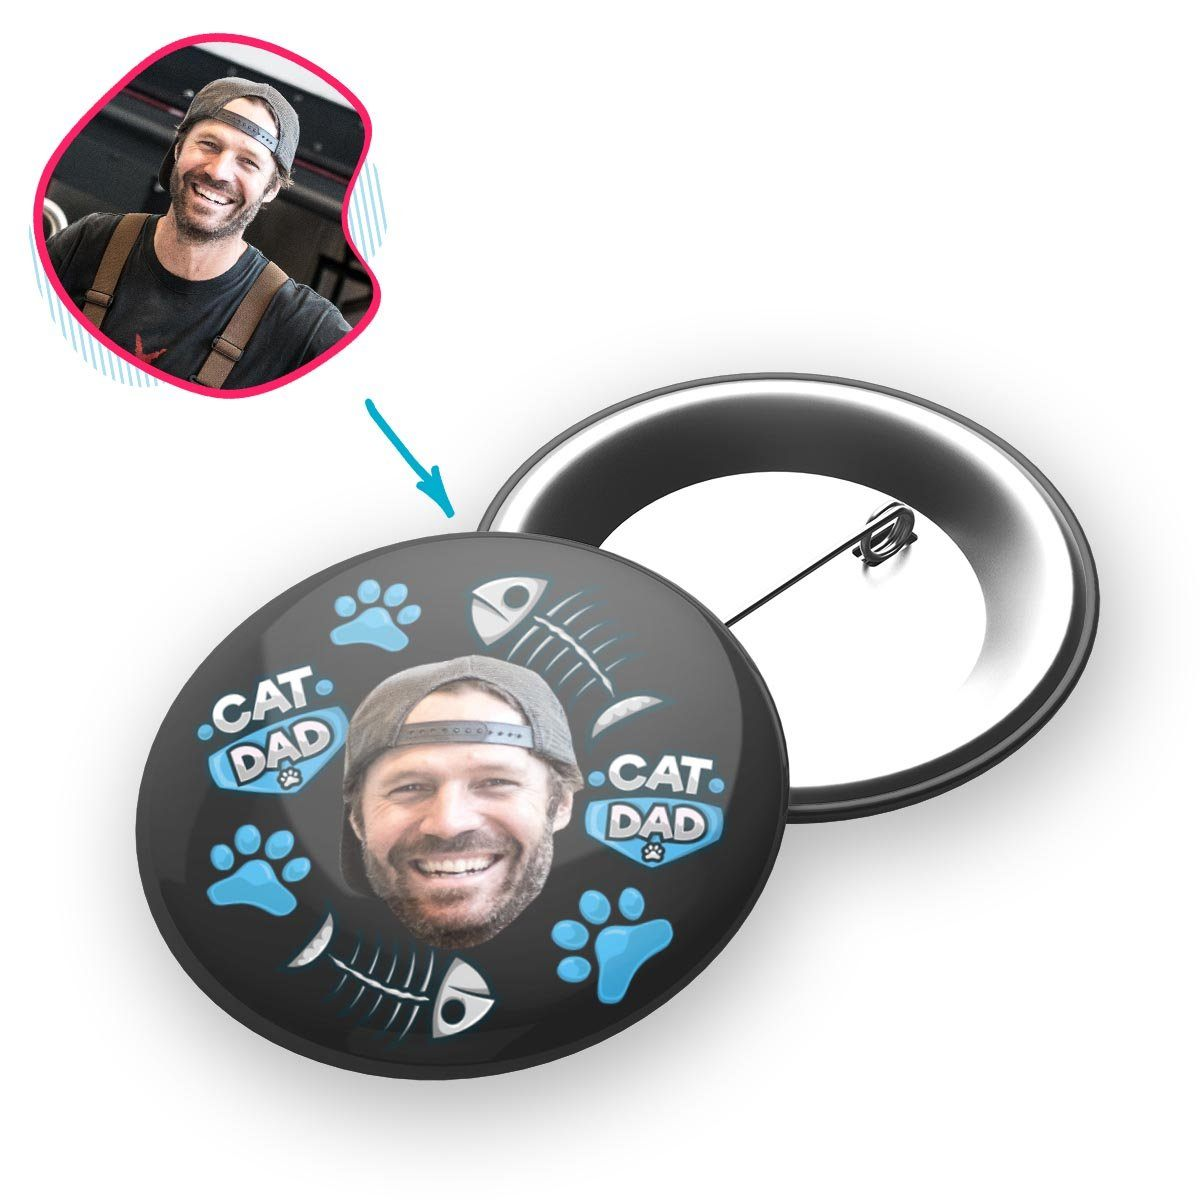 dark Cat Dad pin personalized with photo of face printed on it